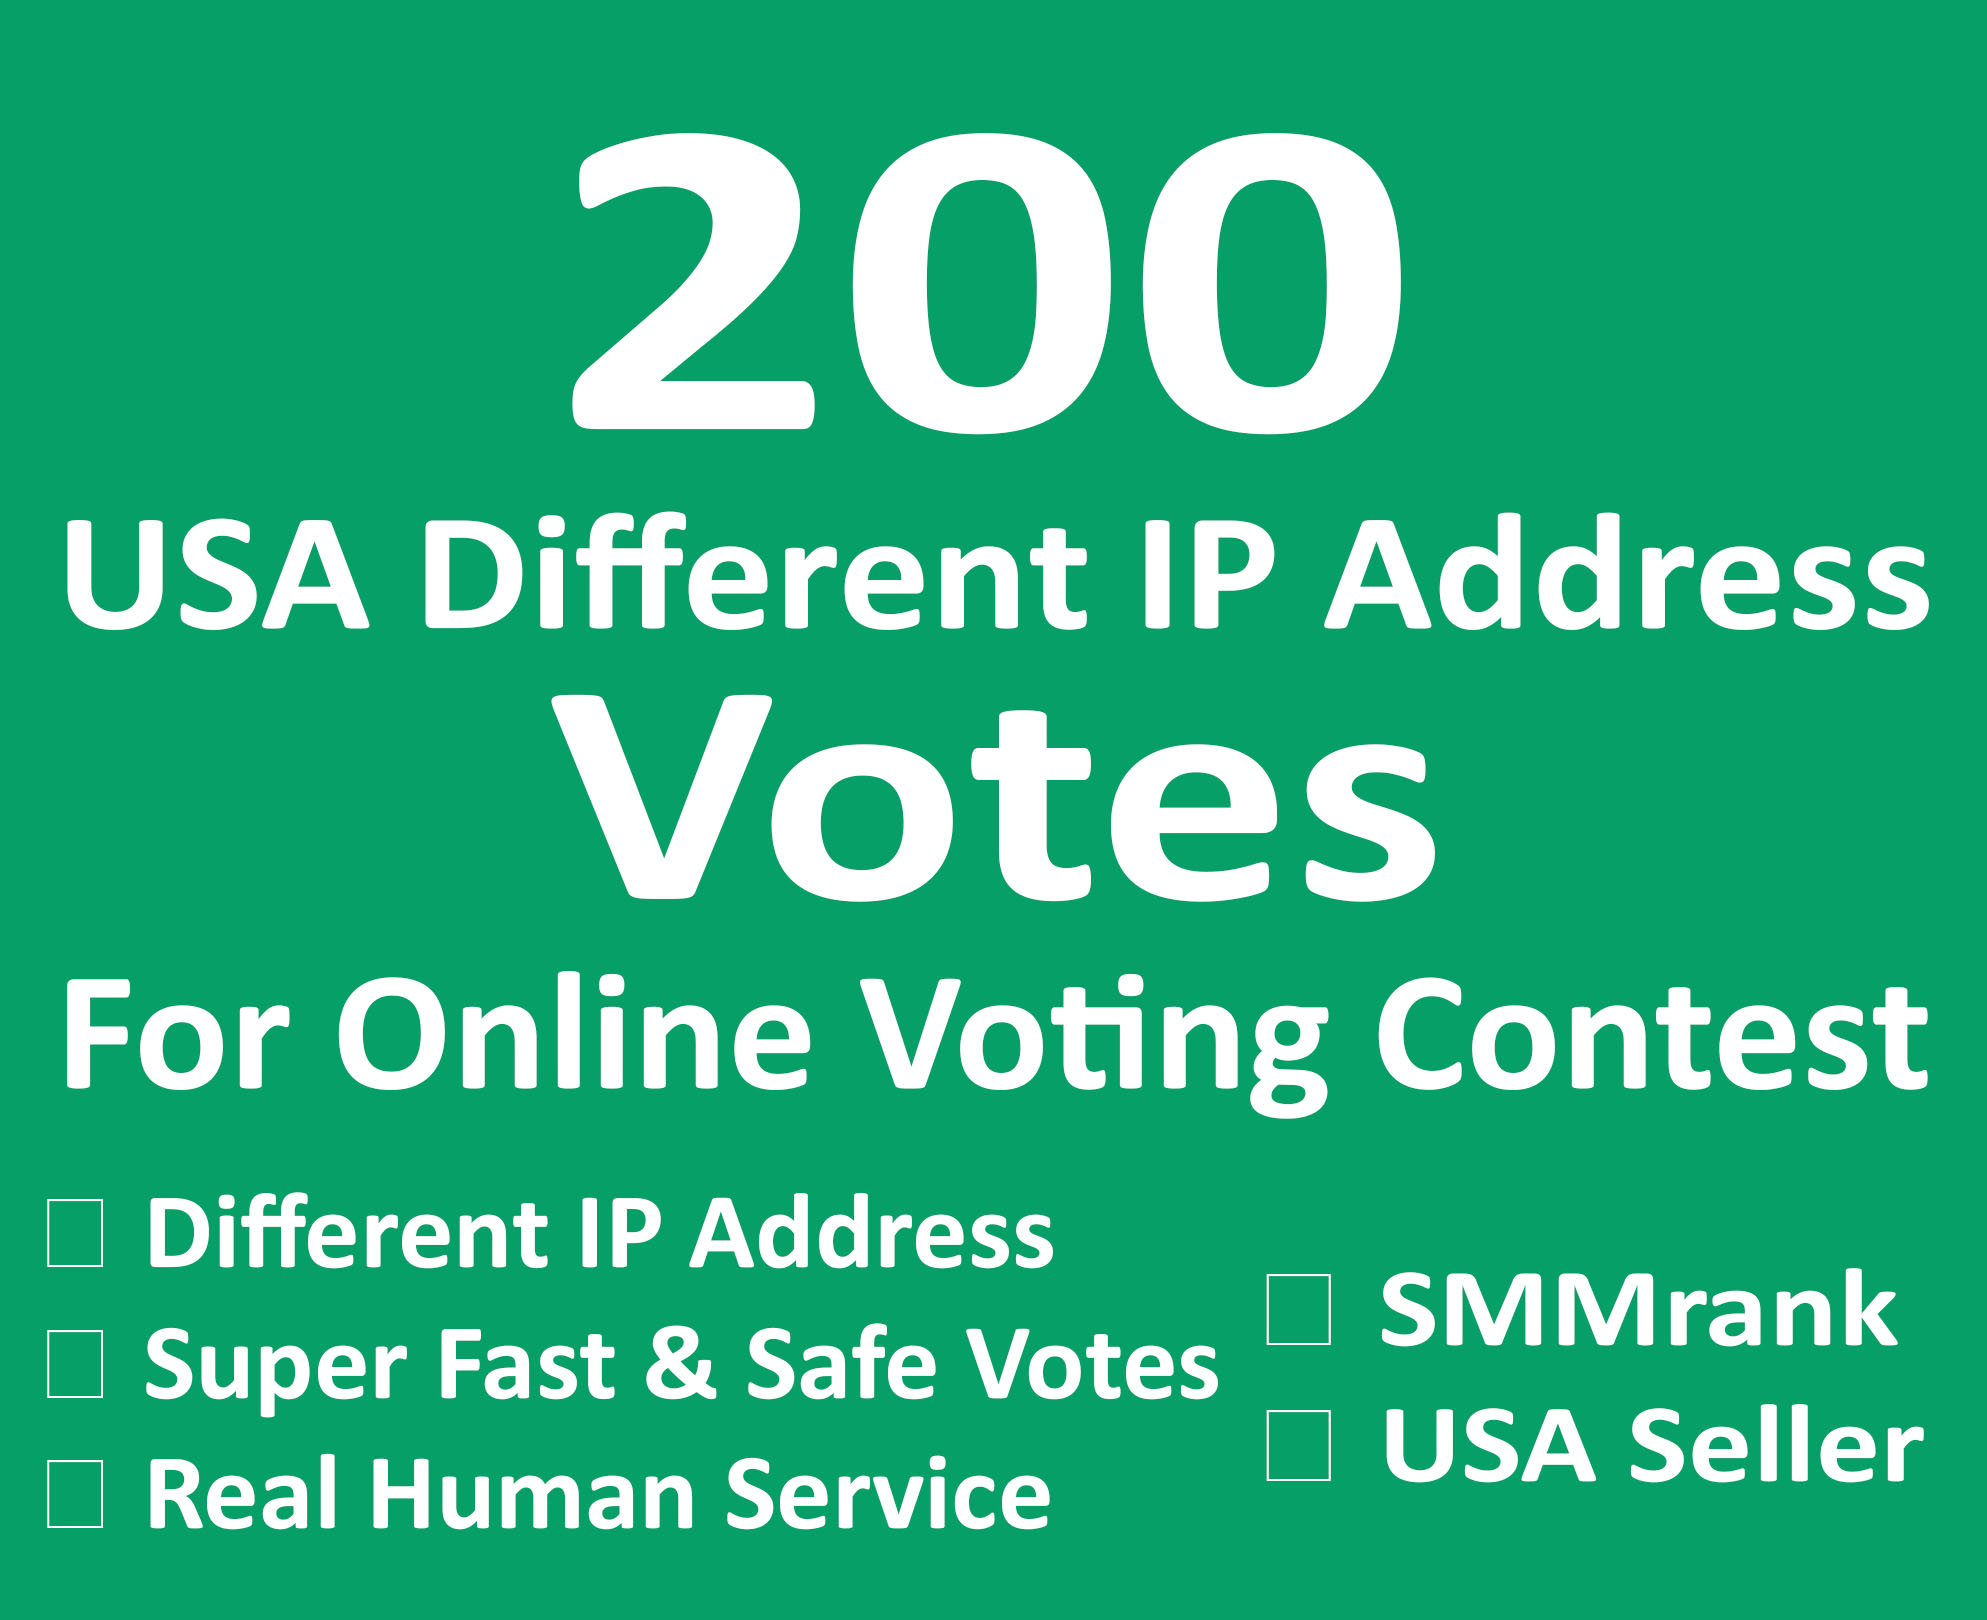 Instant Start 200+ USA Different IP Votes For Any Online Voting Contest